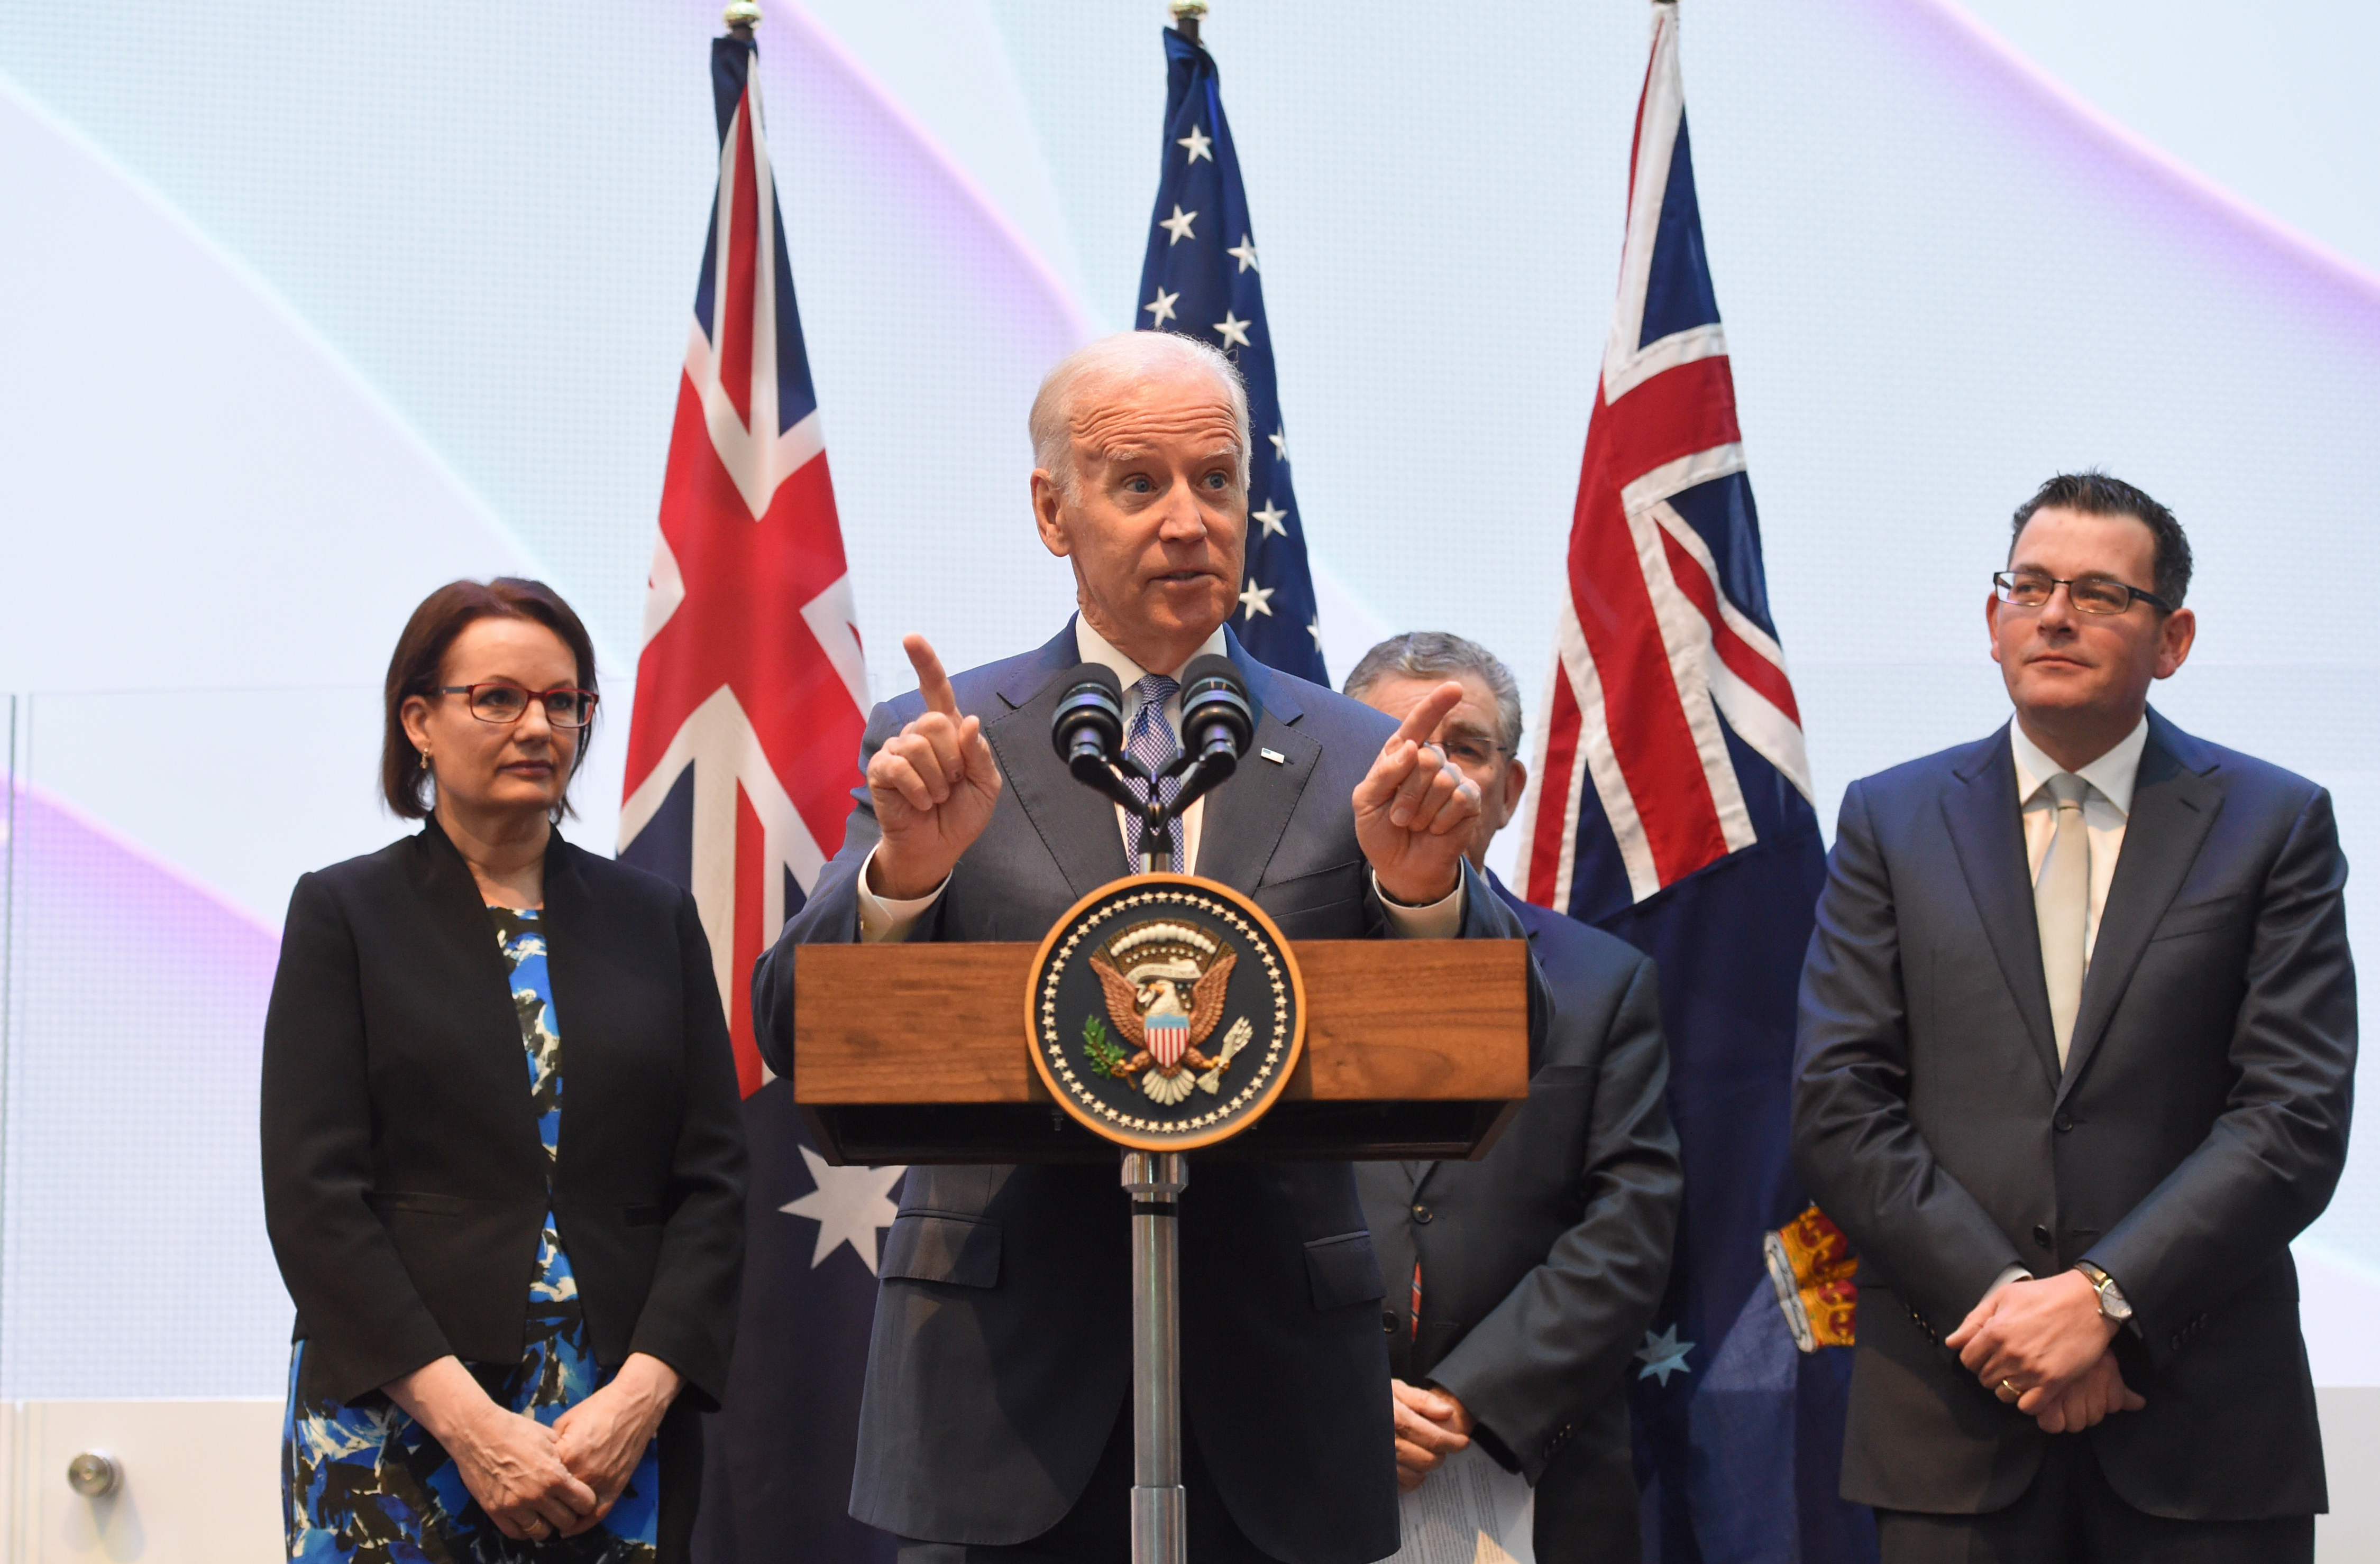 MELBOURNE, AUSTRALIA - JULY 17: US Vice-President Joe Biden (C) speaks to guests with Victorian Premier Daniel Andrews (R), Health Minister Susan Ley (L) and Professor Jim Bishop (2nd R) after a tour of the Victorian Comprehensive Cancer Centre on July 17, 2016 in Melbourne, Australia. Biden is visiting Australia on a four day trip which includes a visit to Melbourne at the Victorian Comprehensive Cancer Centre to promote US-Australia cancer research and will host a round-table discussion with business leaders in Sydney. (Photo by Tracey Nearmy - Pool/Getty Images)